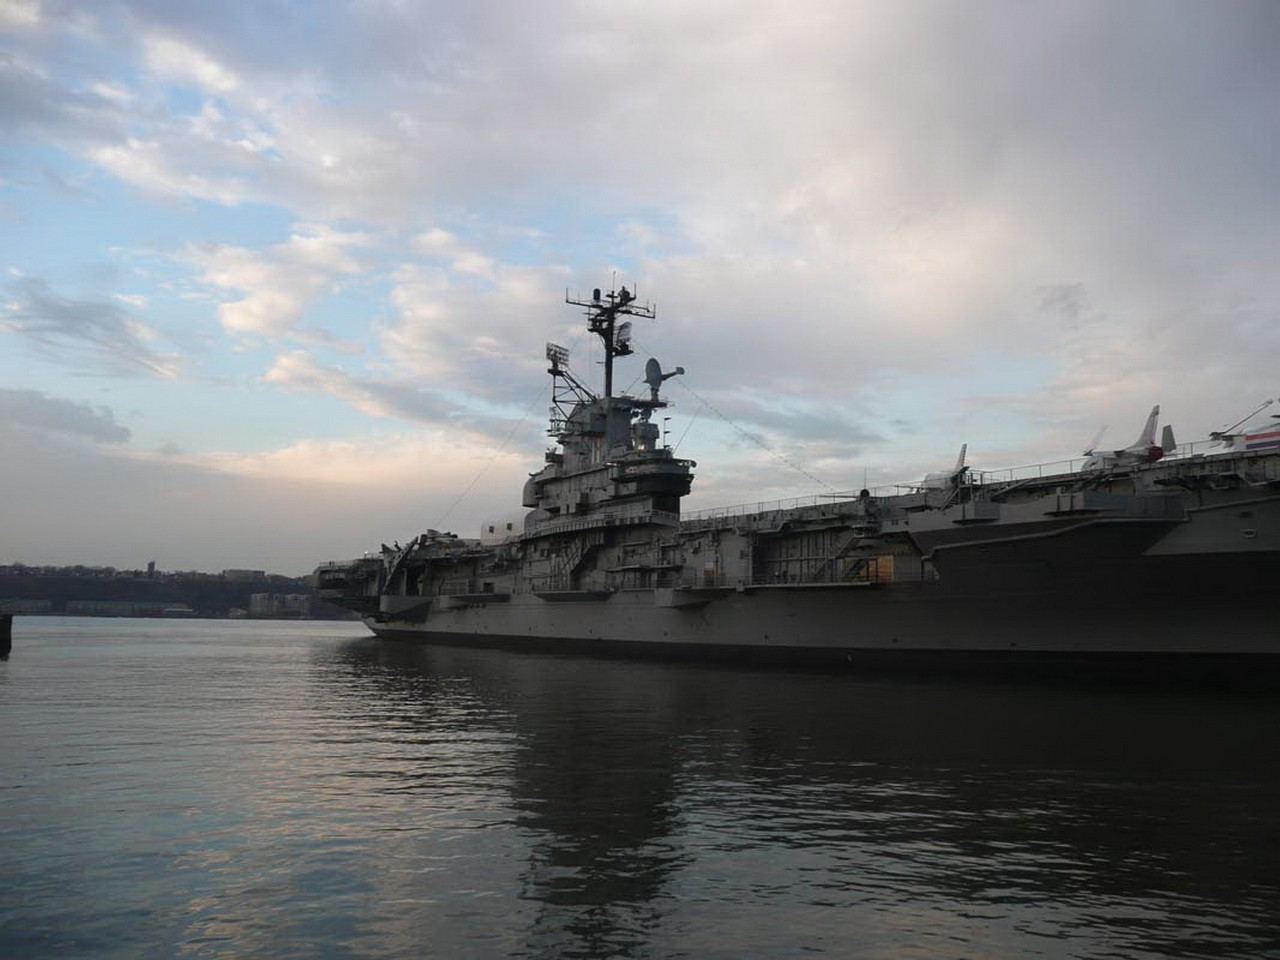 USS Intrepid CVA-11